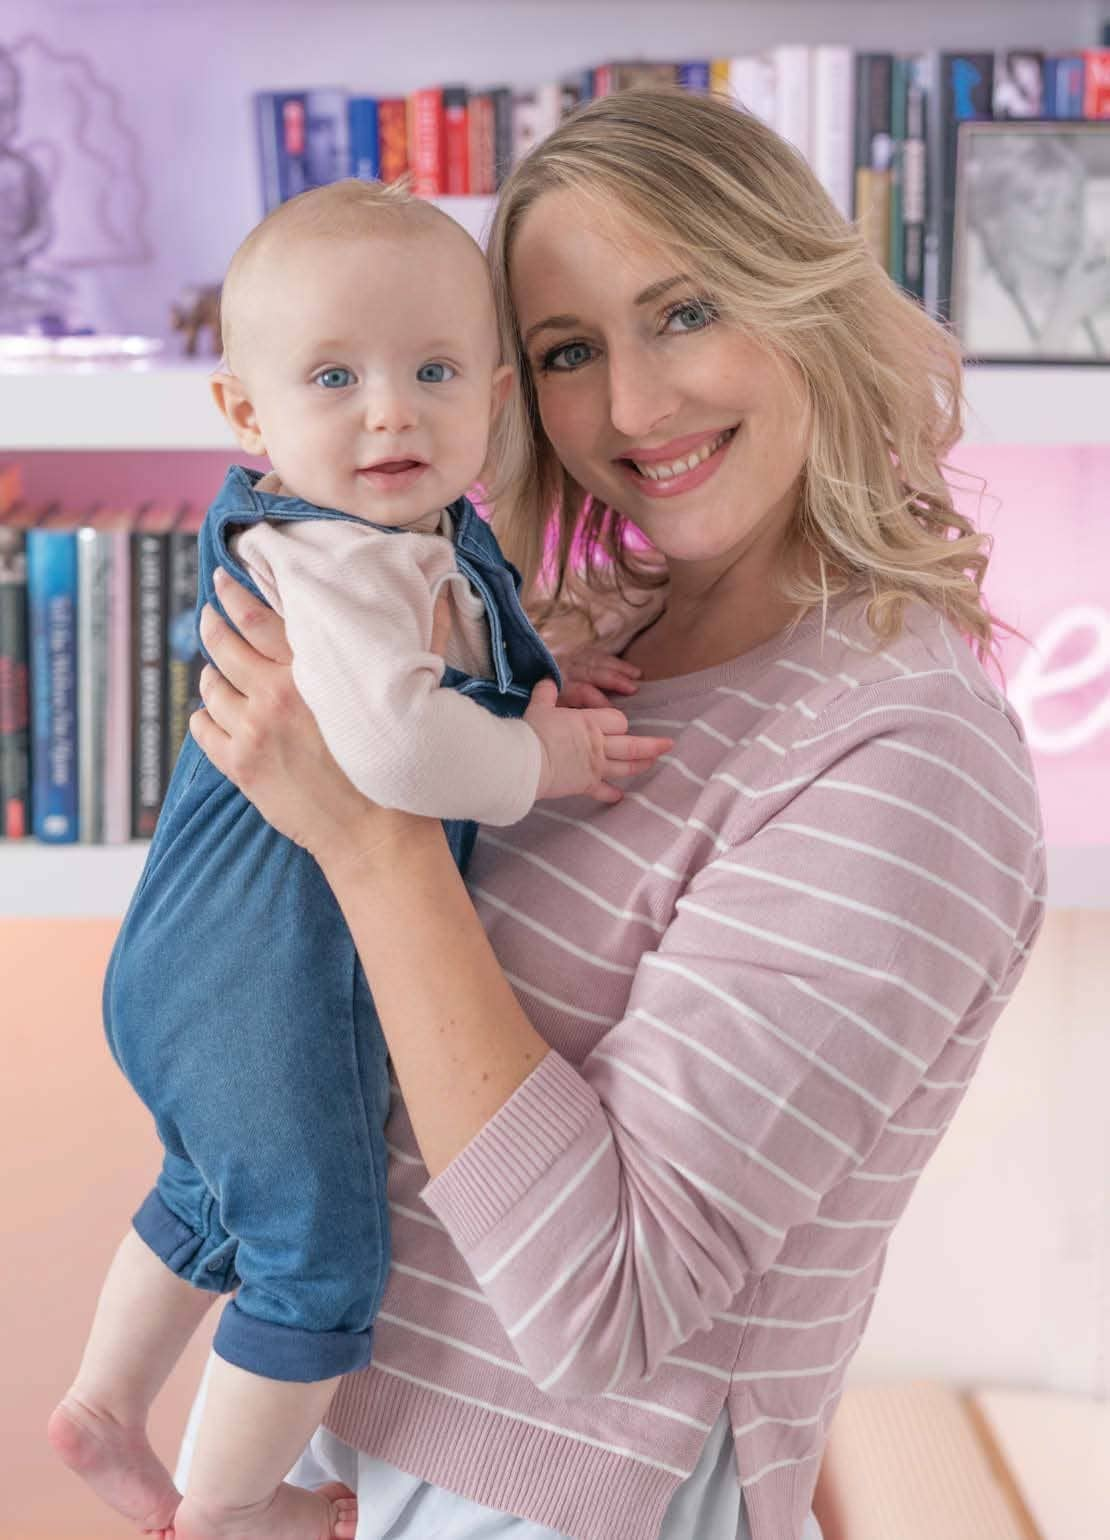 'Motherhood's exhausting but I'd love another baby'